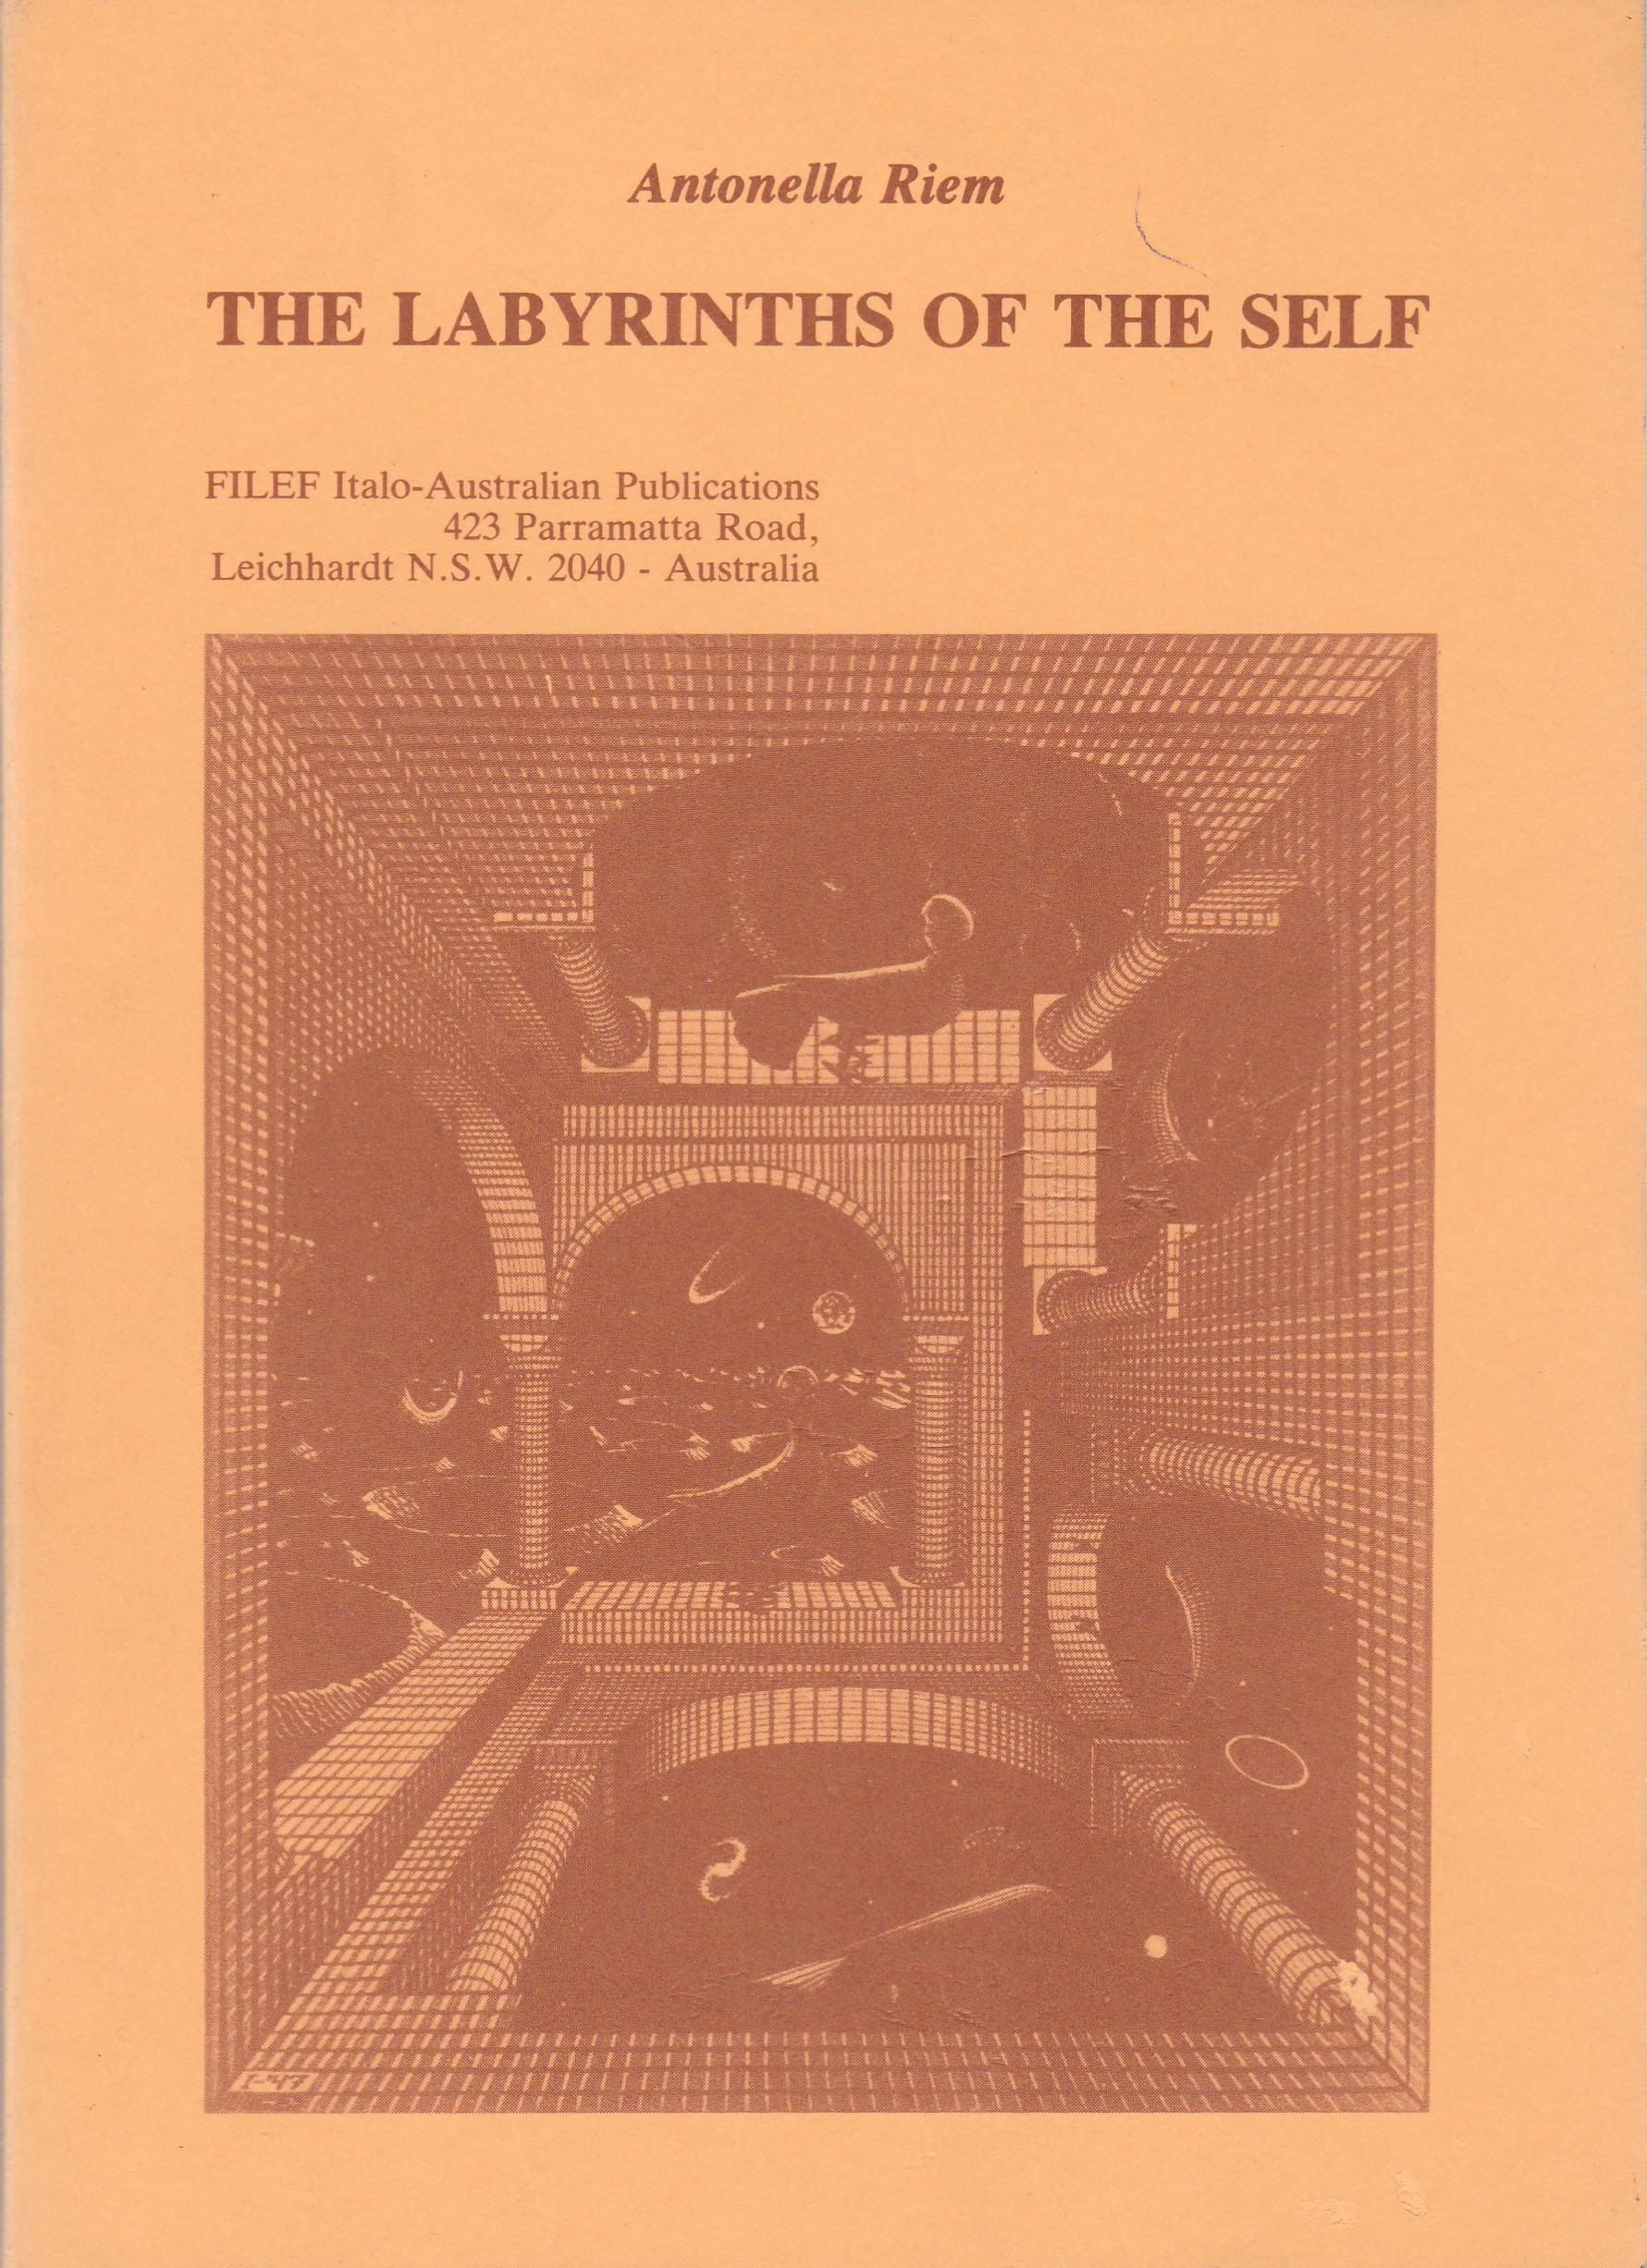 The Lbyrinths of the Self